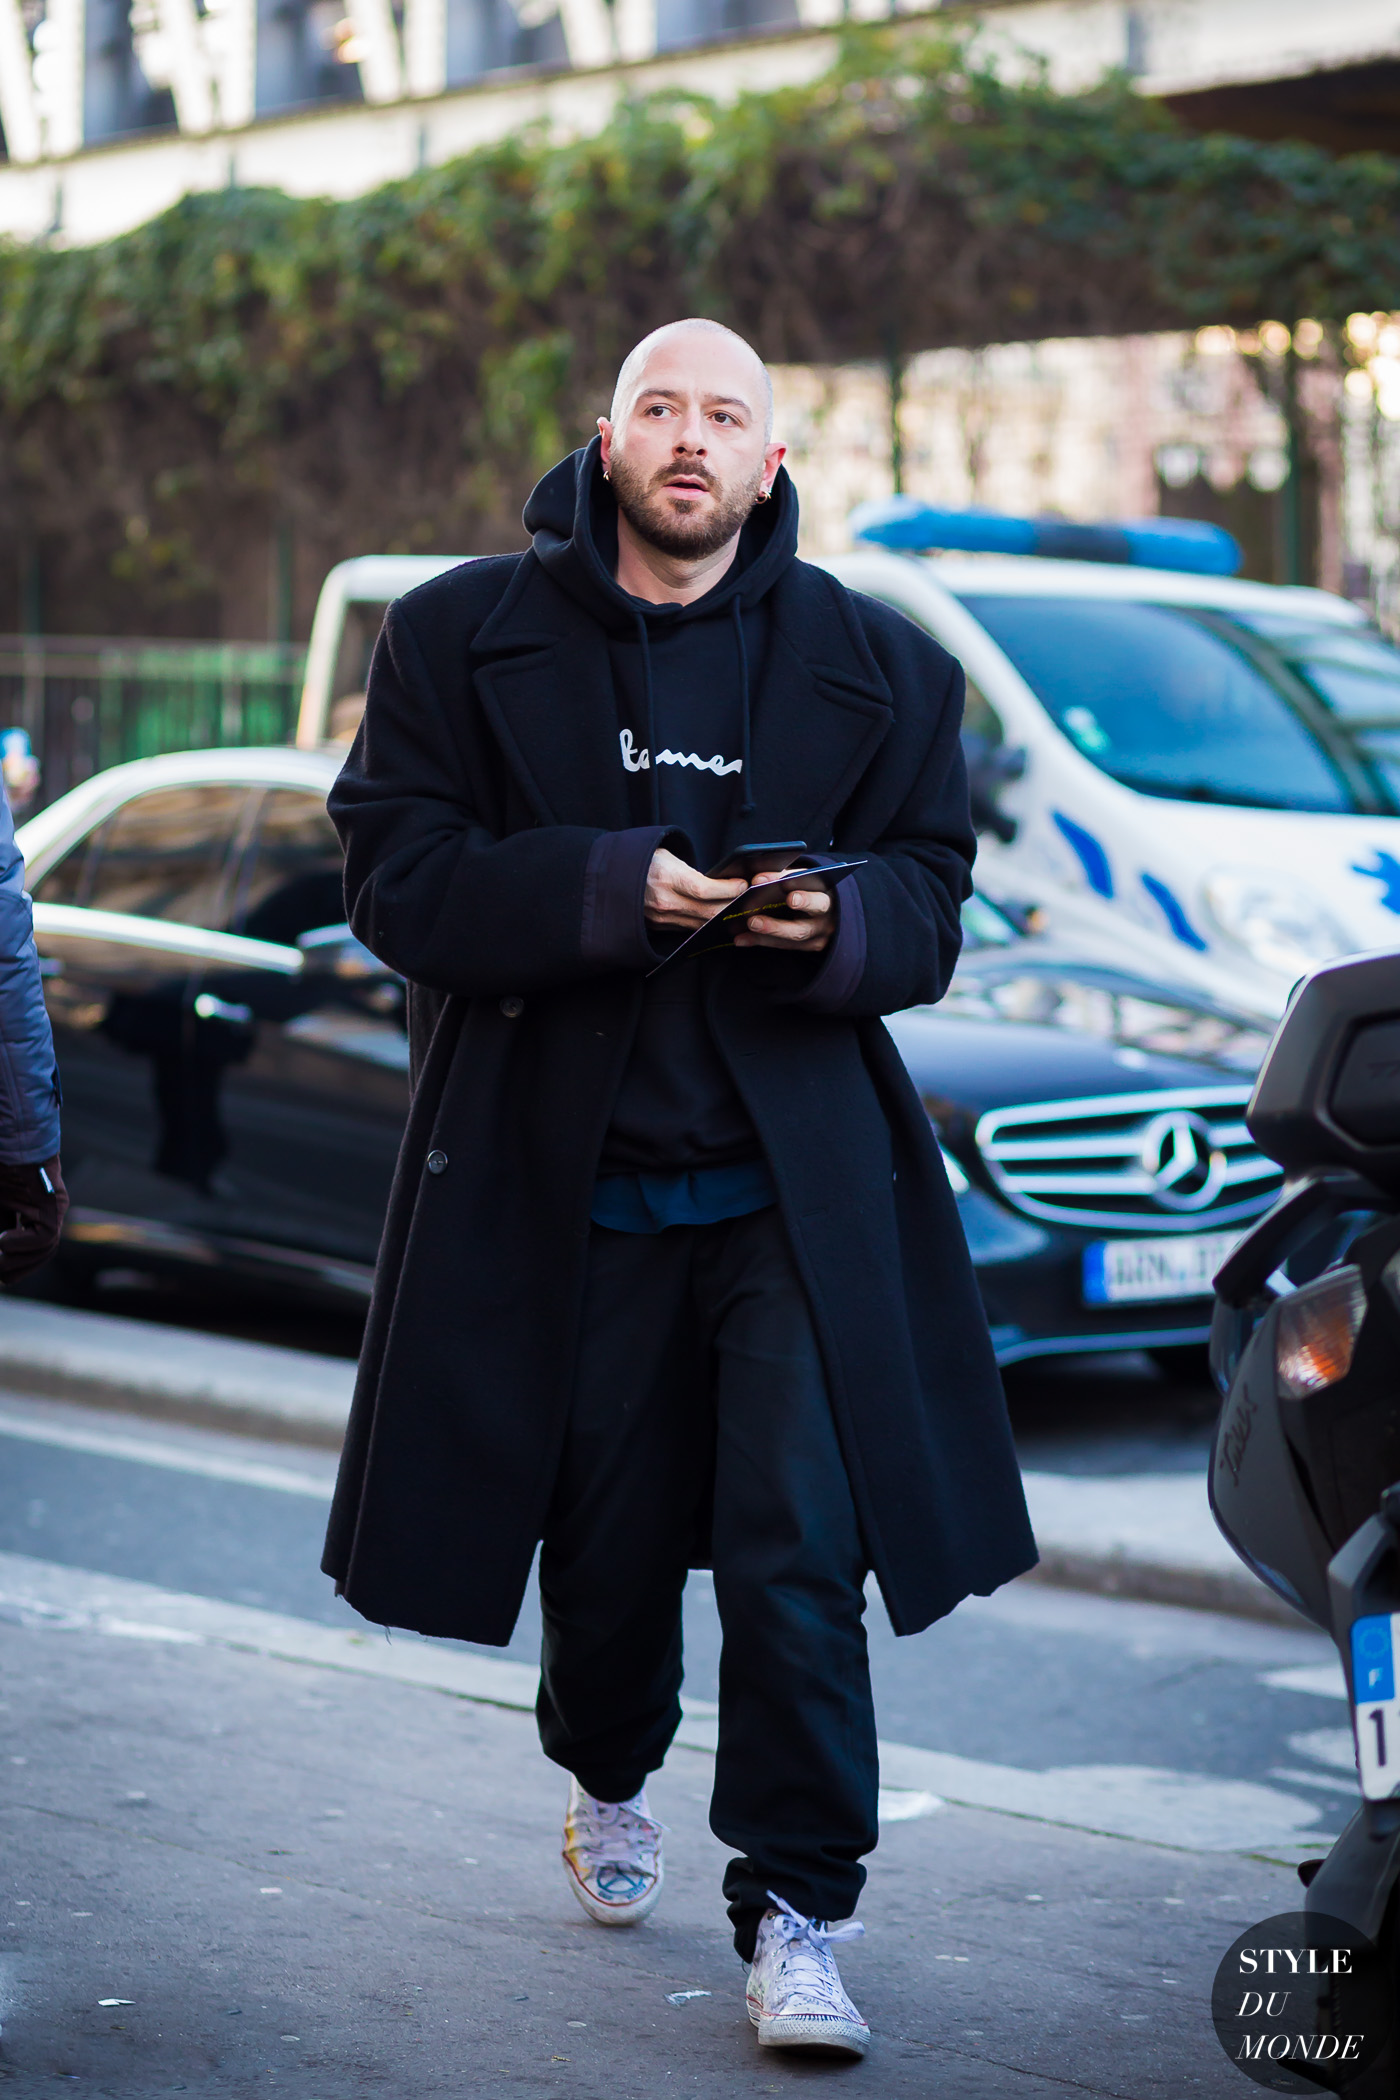 Demna Gvasalia Vetements Balenciaga designer Street Style Street Fashion Streetsnaps by STYLEDUMONDE Street Style Fashion Photography